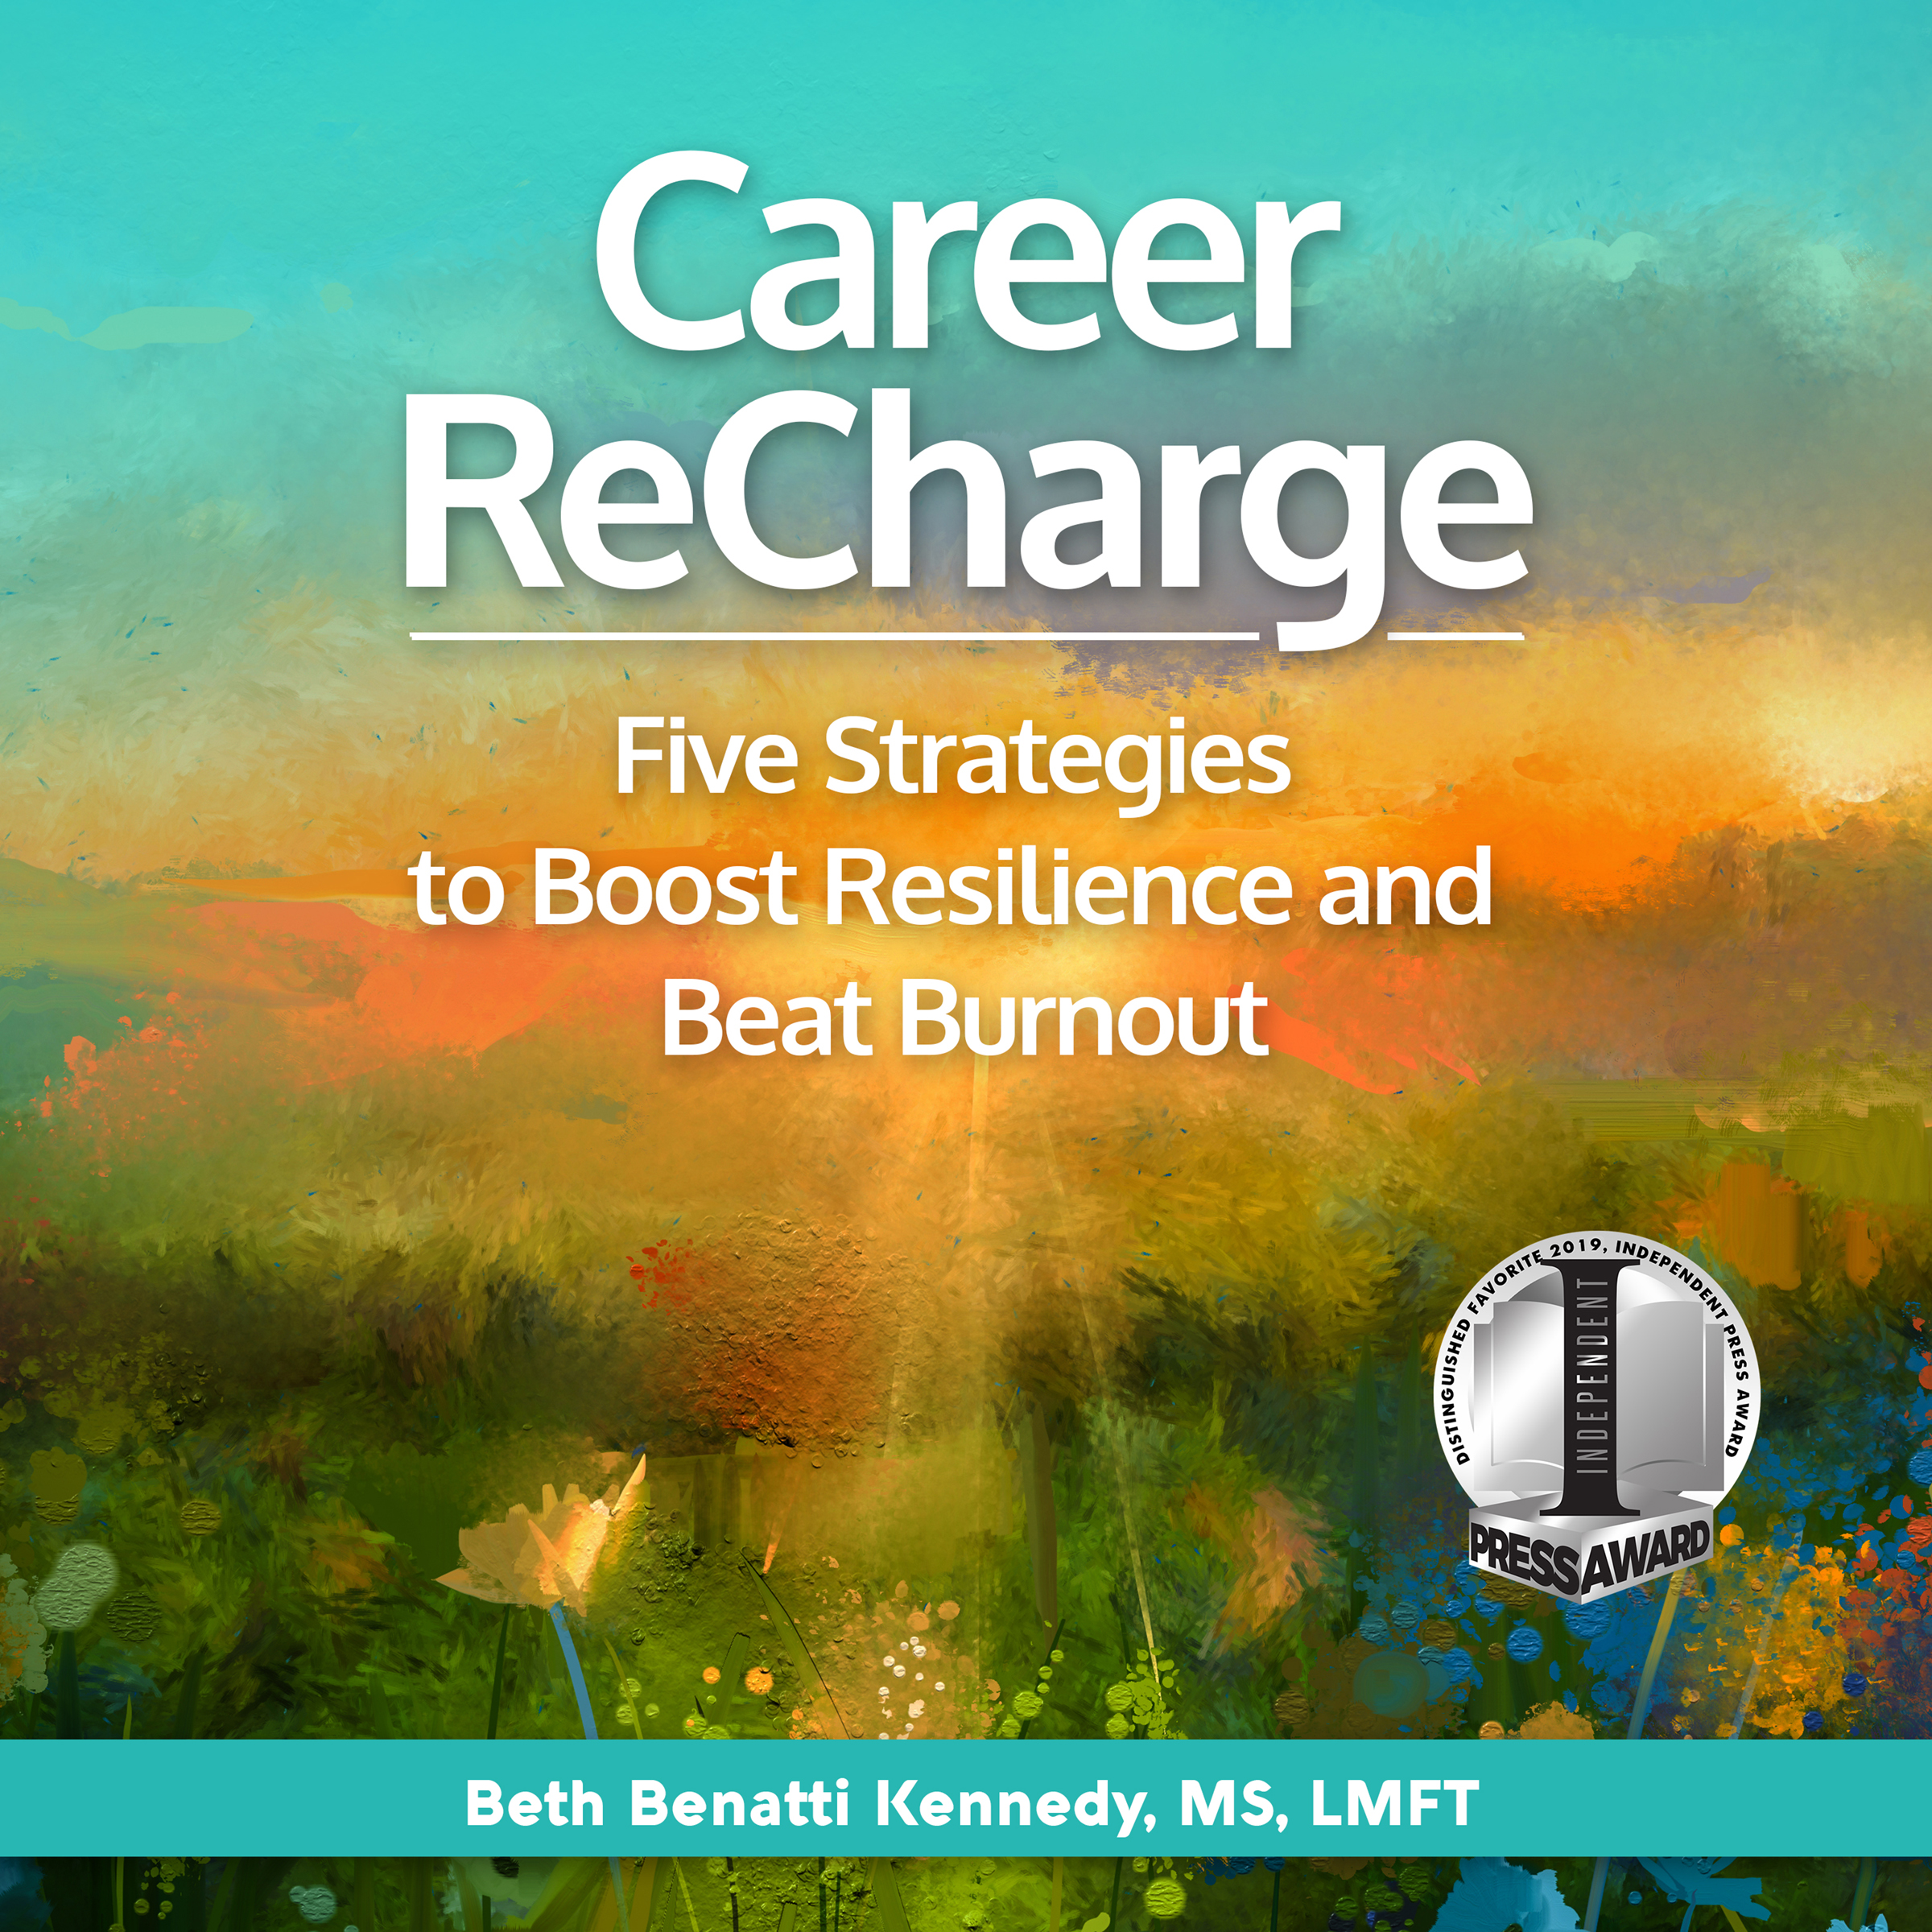 Career ReCharge